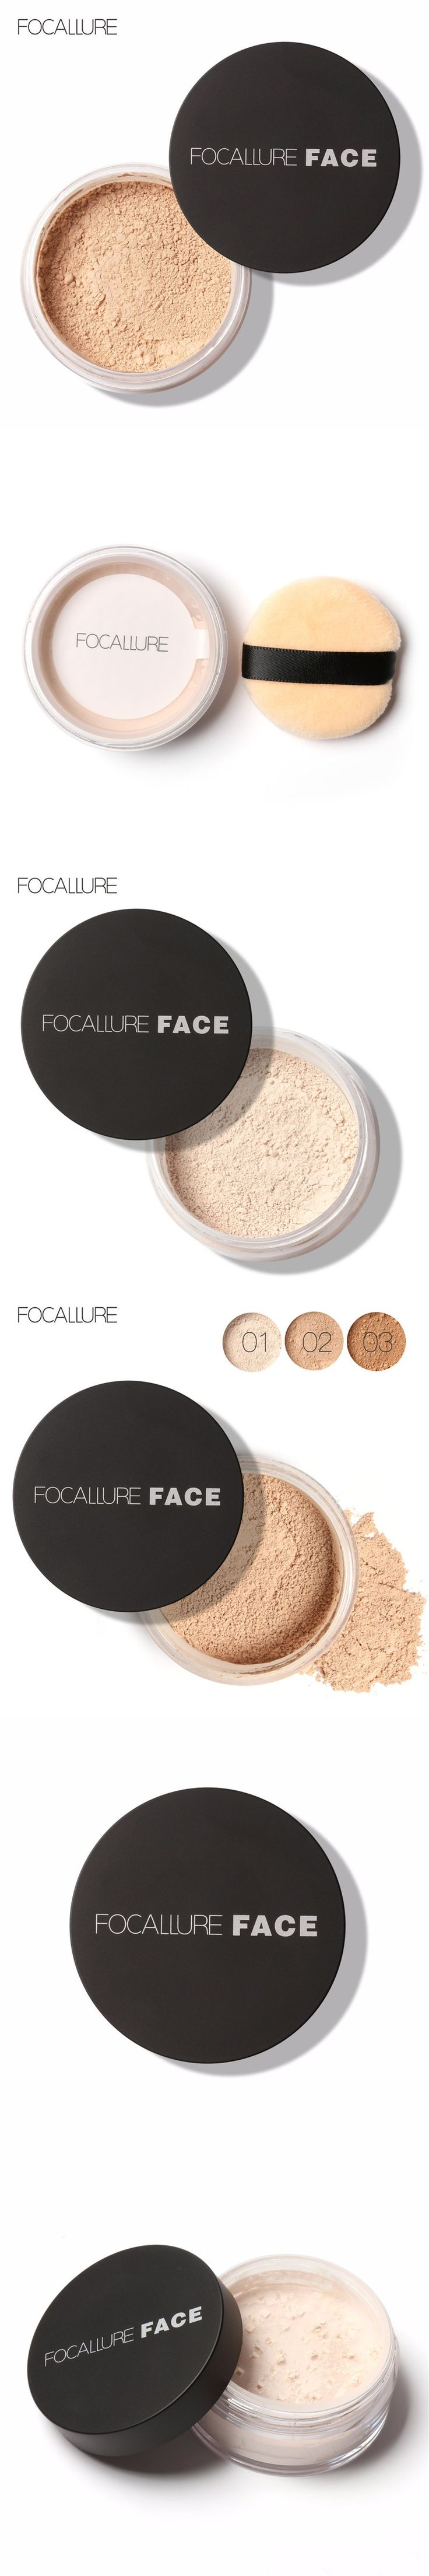 focallure Make Up Primer Loose Powder with Puff Setting Powder Poudre Libre Oil-control Finishing Powder Matte Banana Powder